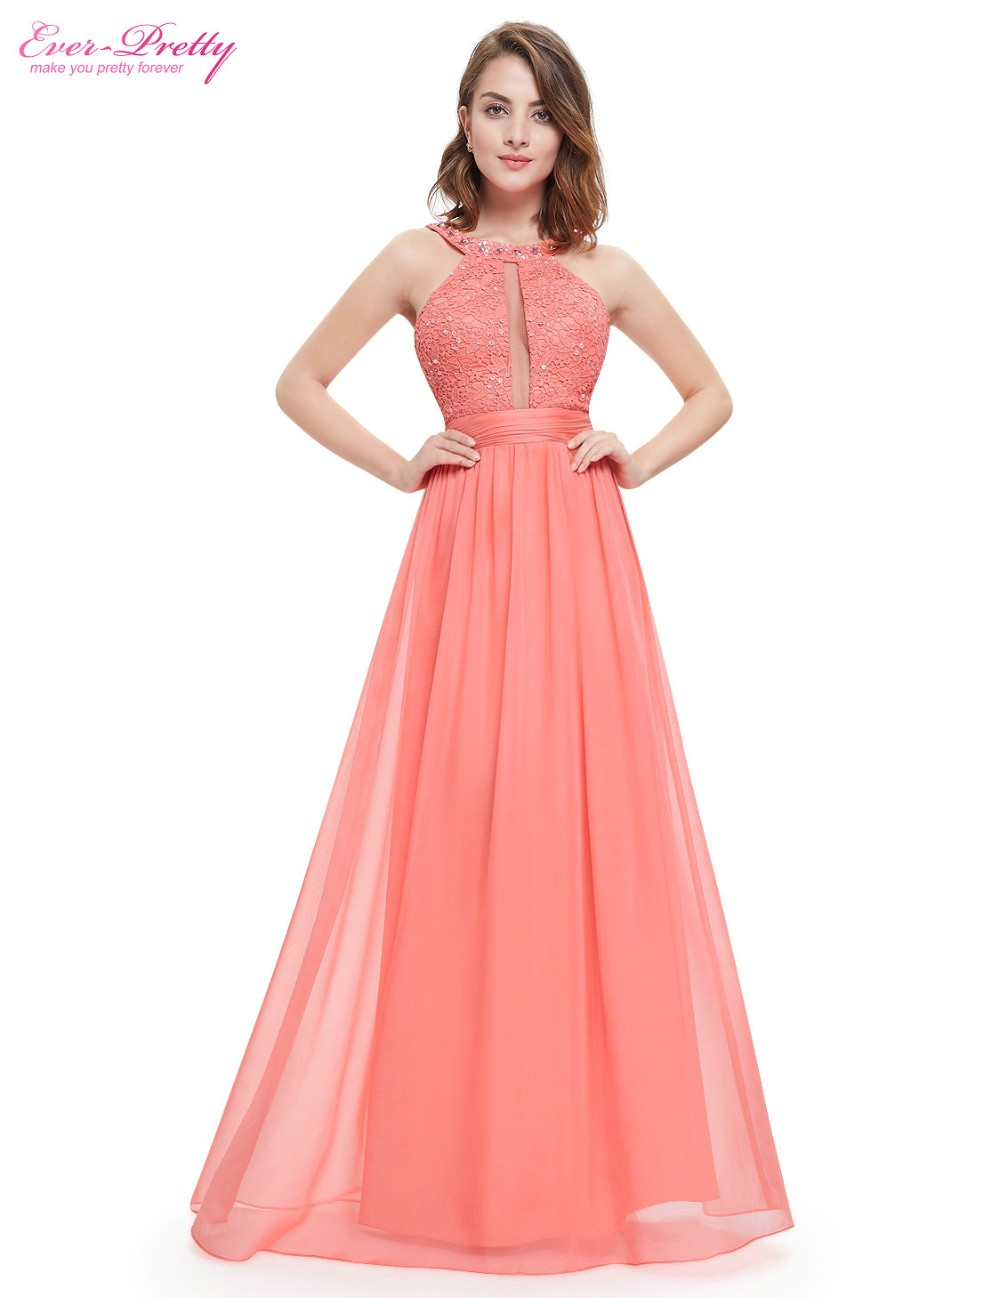 Long Evening Dresses 2018 Women Sexy Ever Pretty EP08572 Beads Round Neck Wedding Events Green Lacy Ruffled Evening Dress New